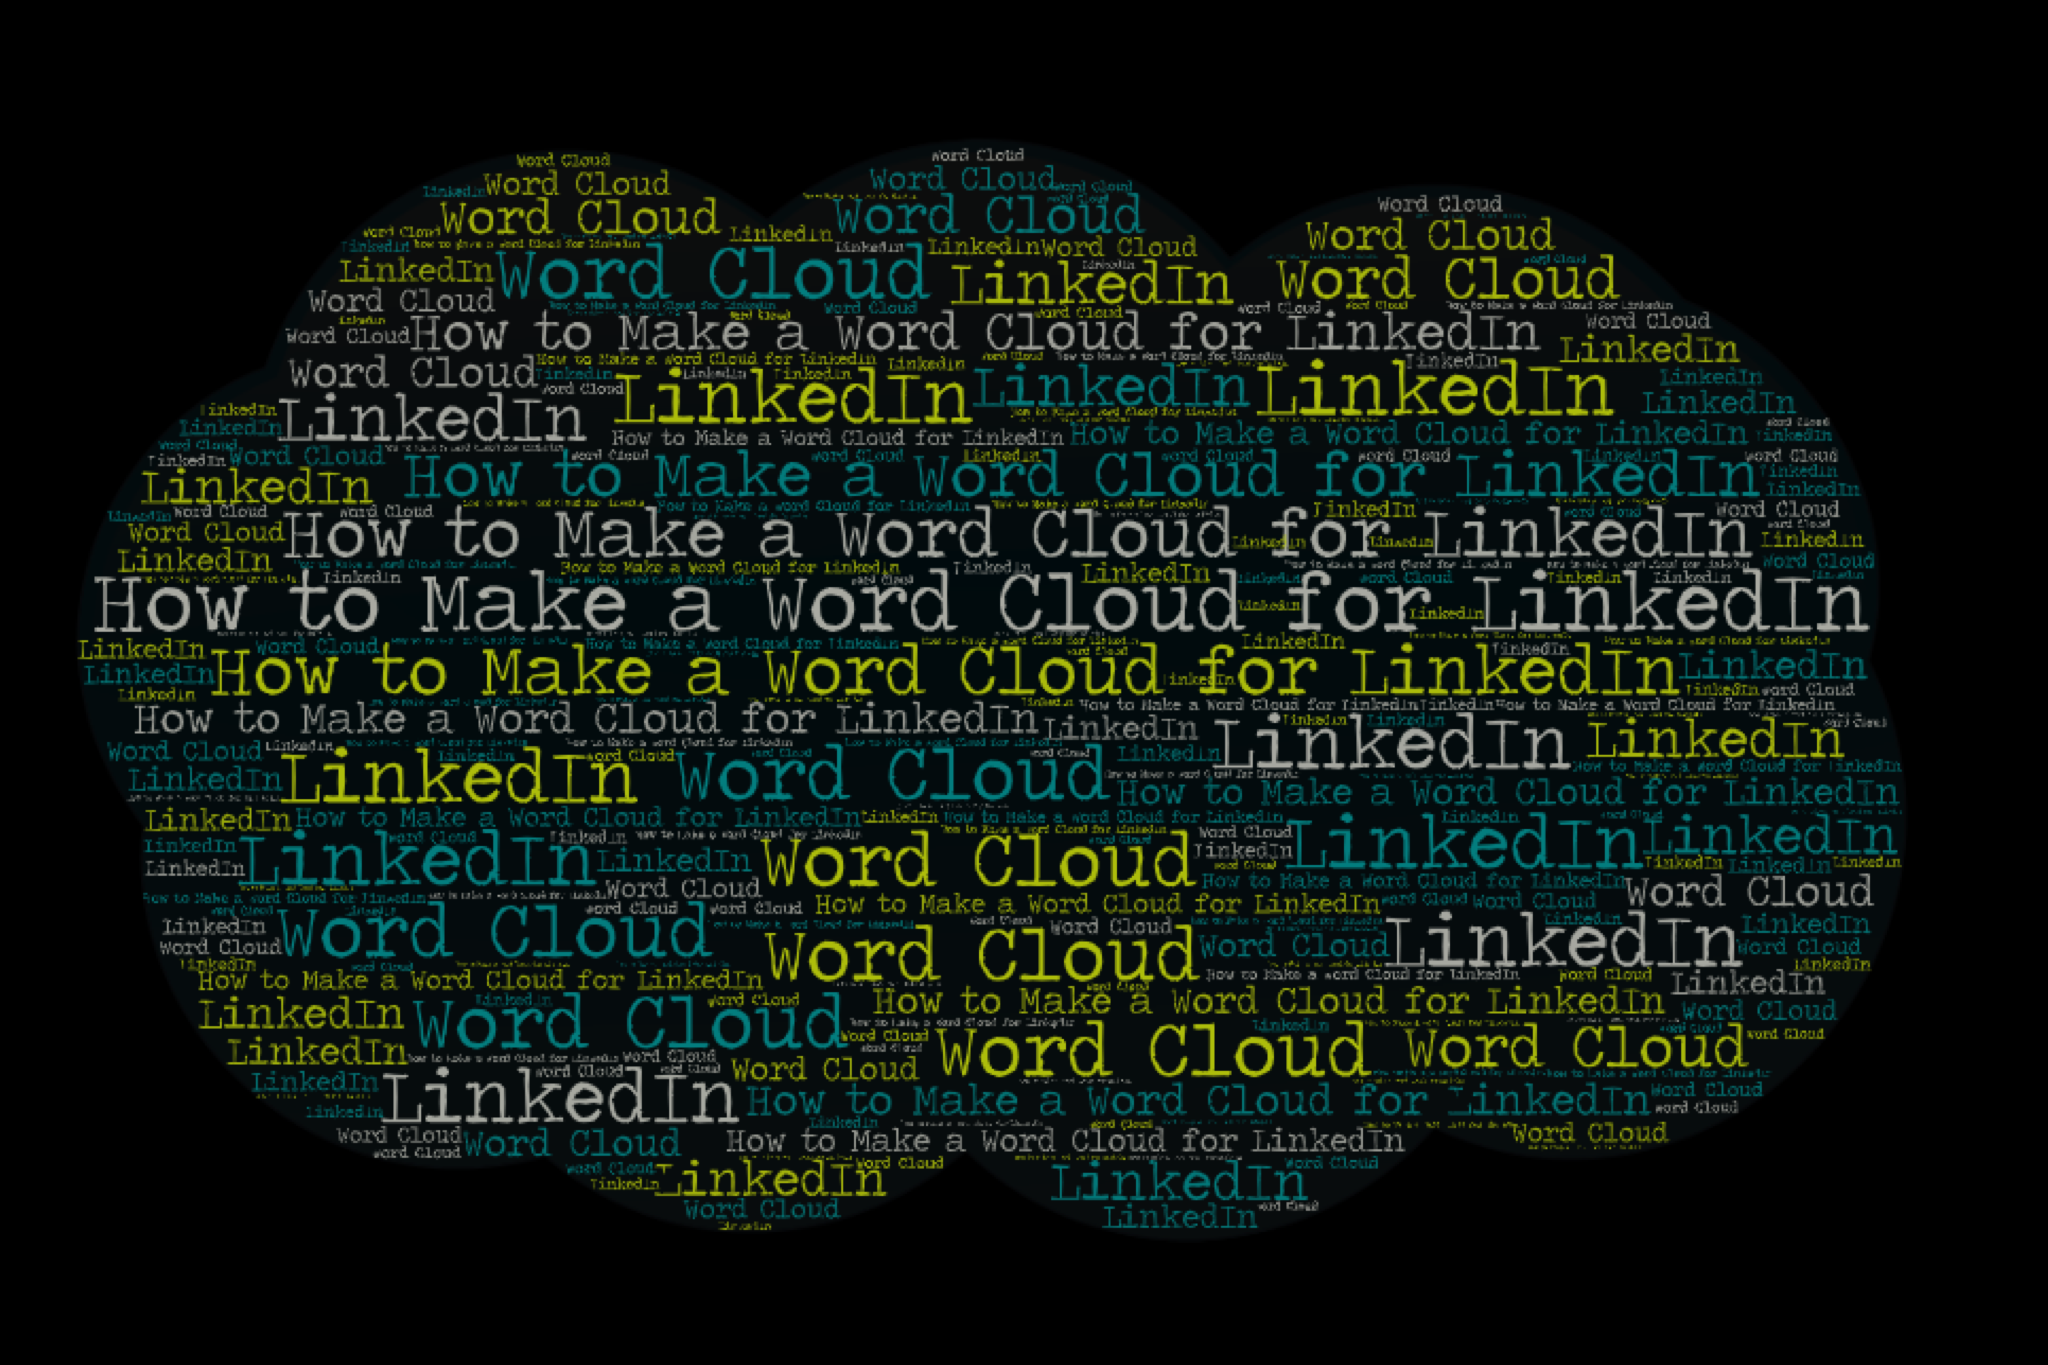 How to Make a Word Cloud for LinkedIn